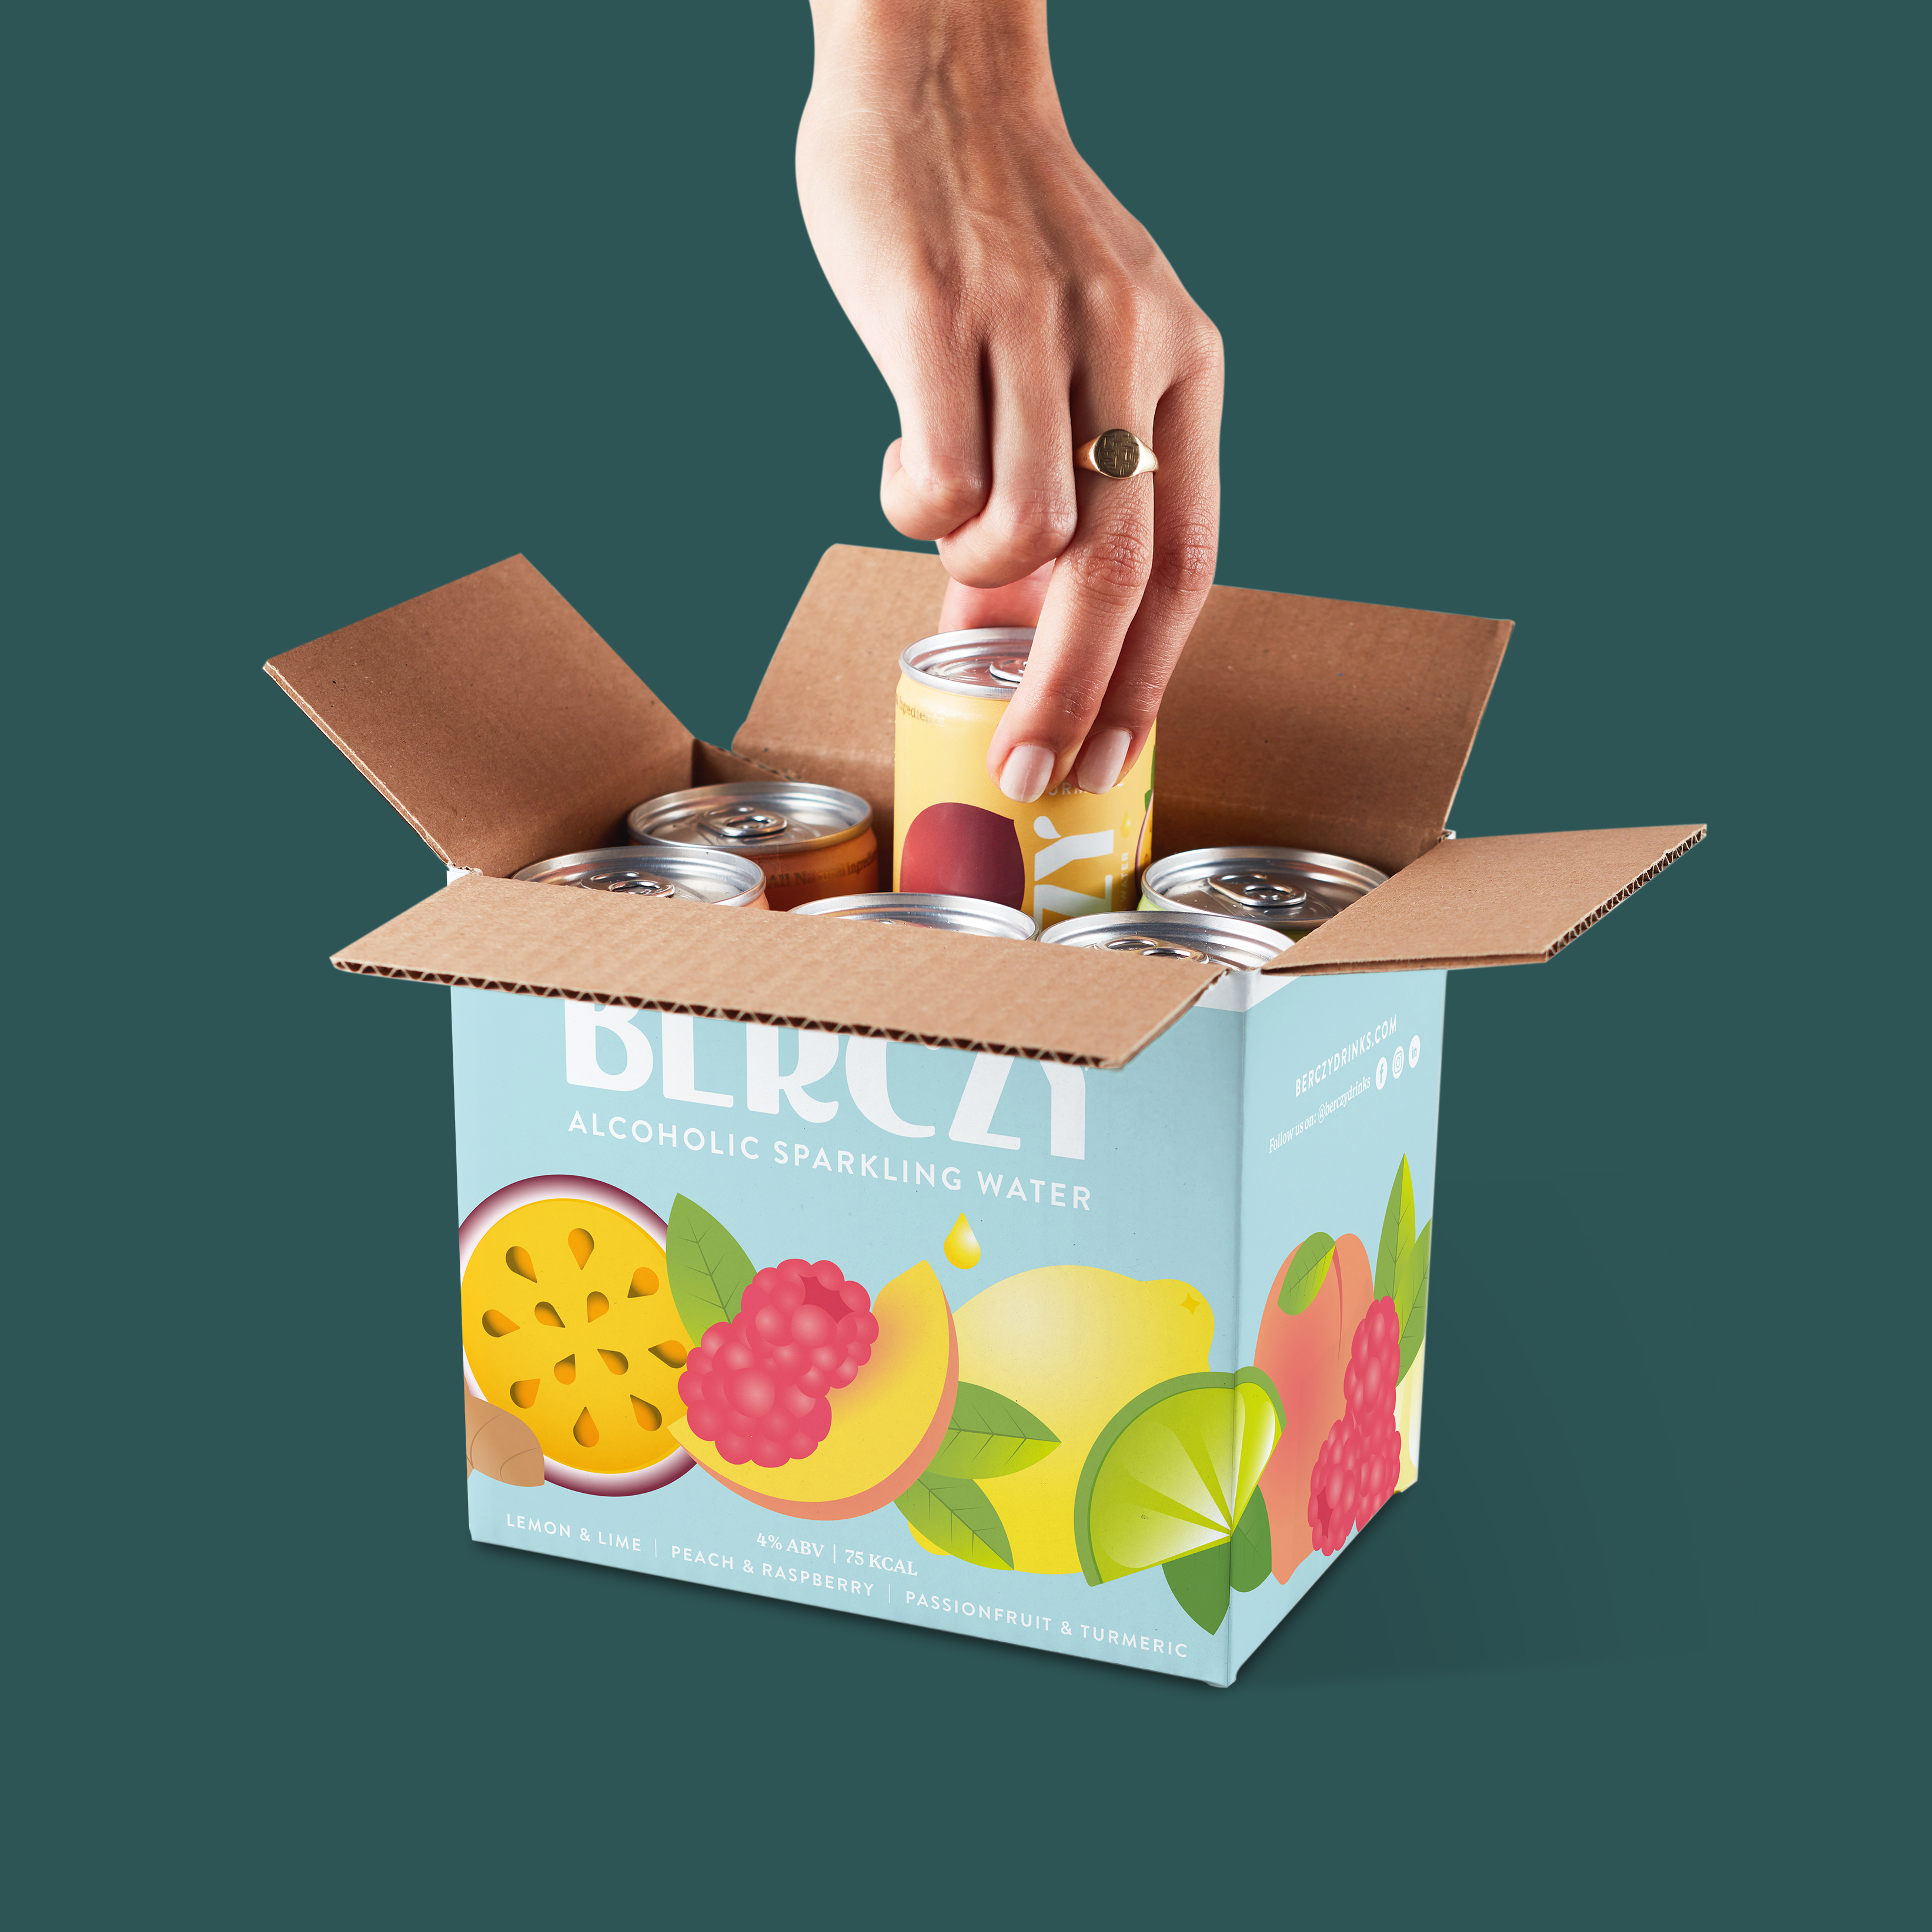 Picking up a can from a box of Berczy drinks